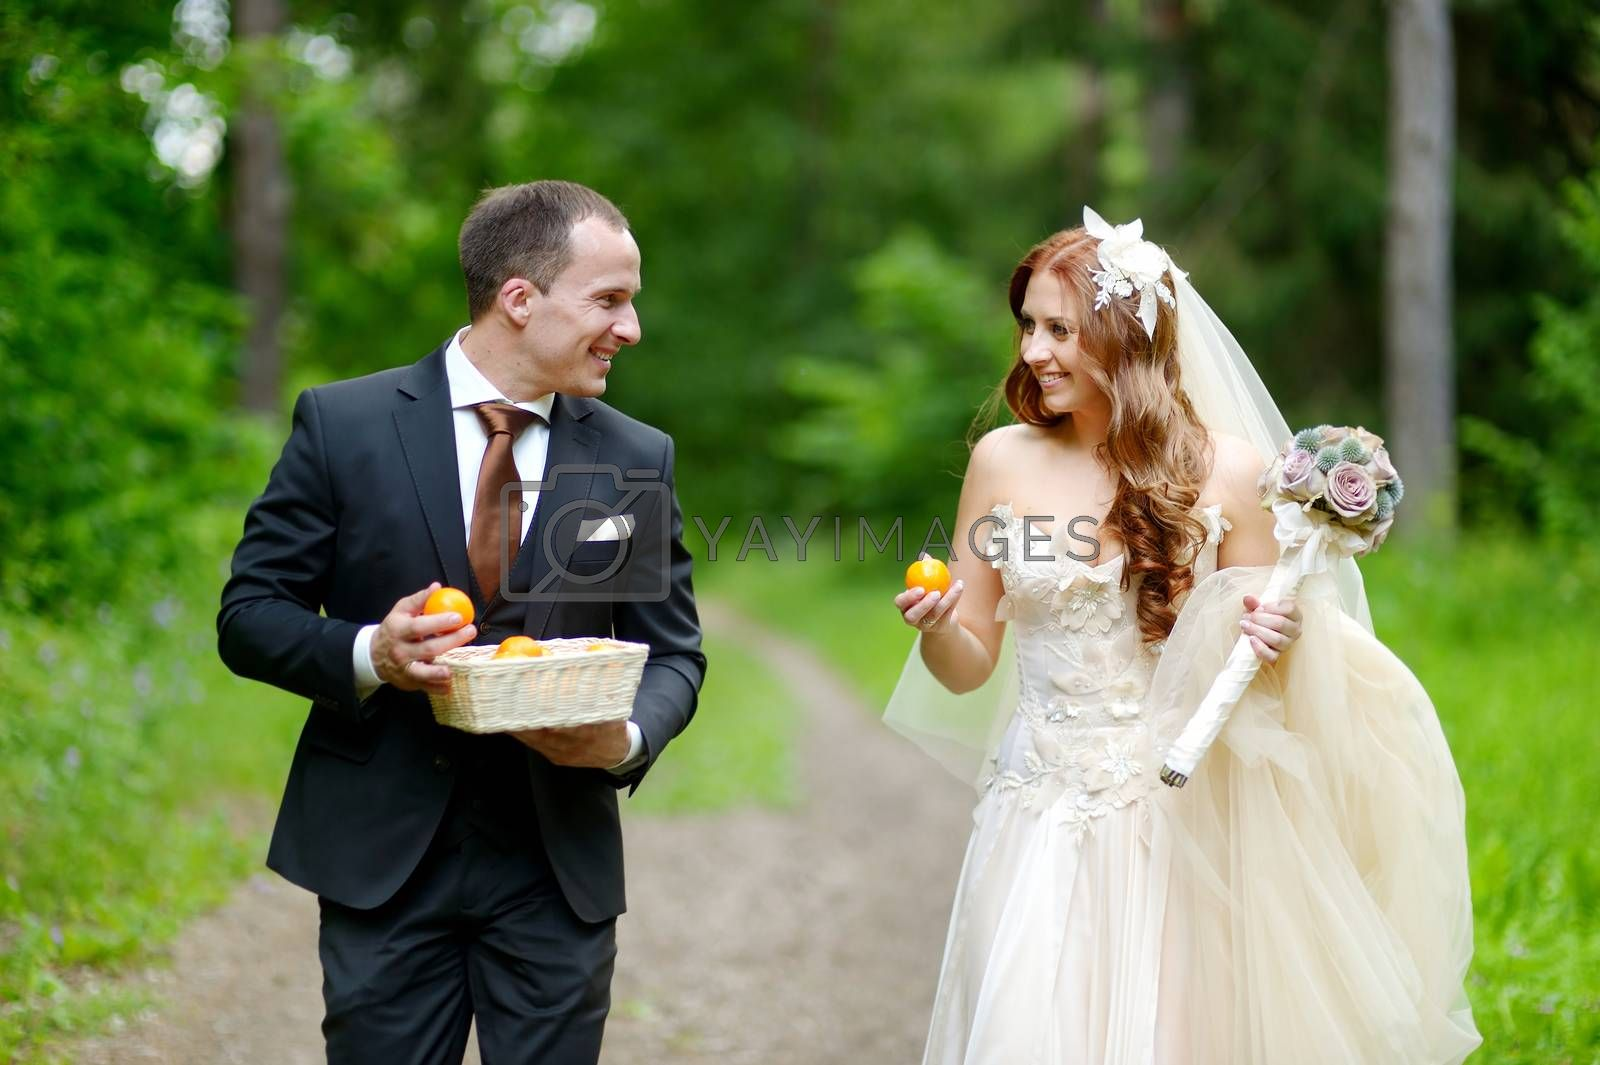 Young bride and groom taking a walk in beautiful summer park